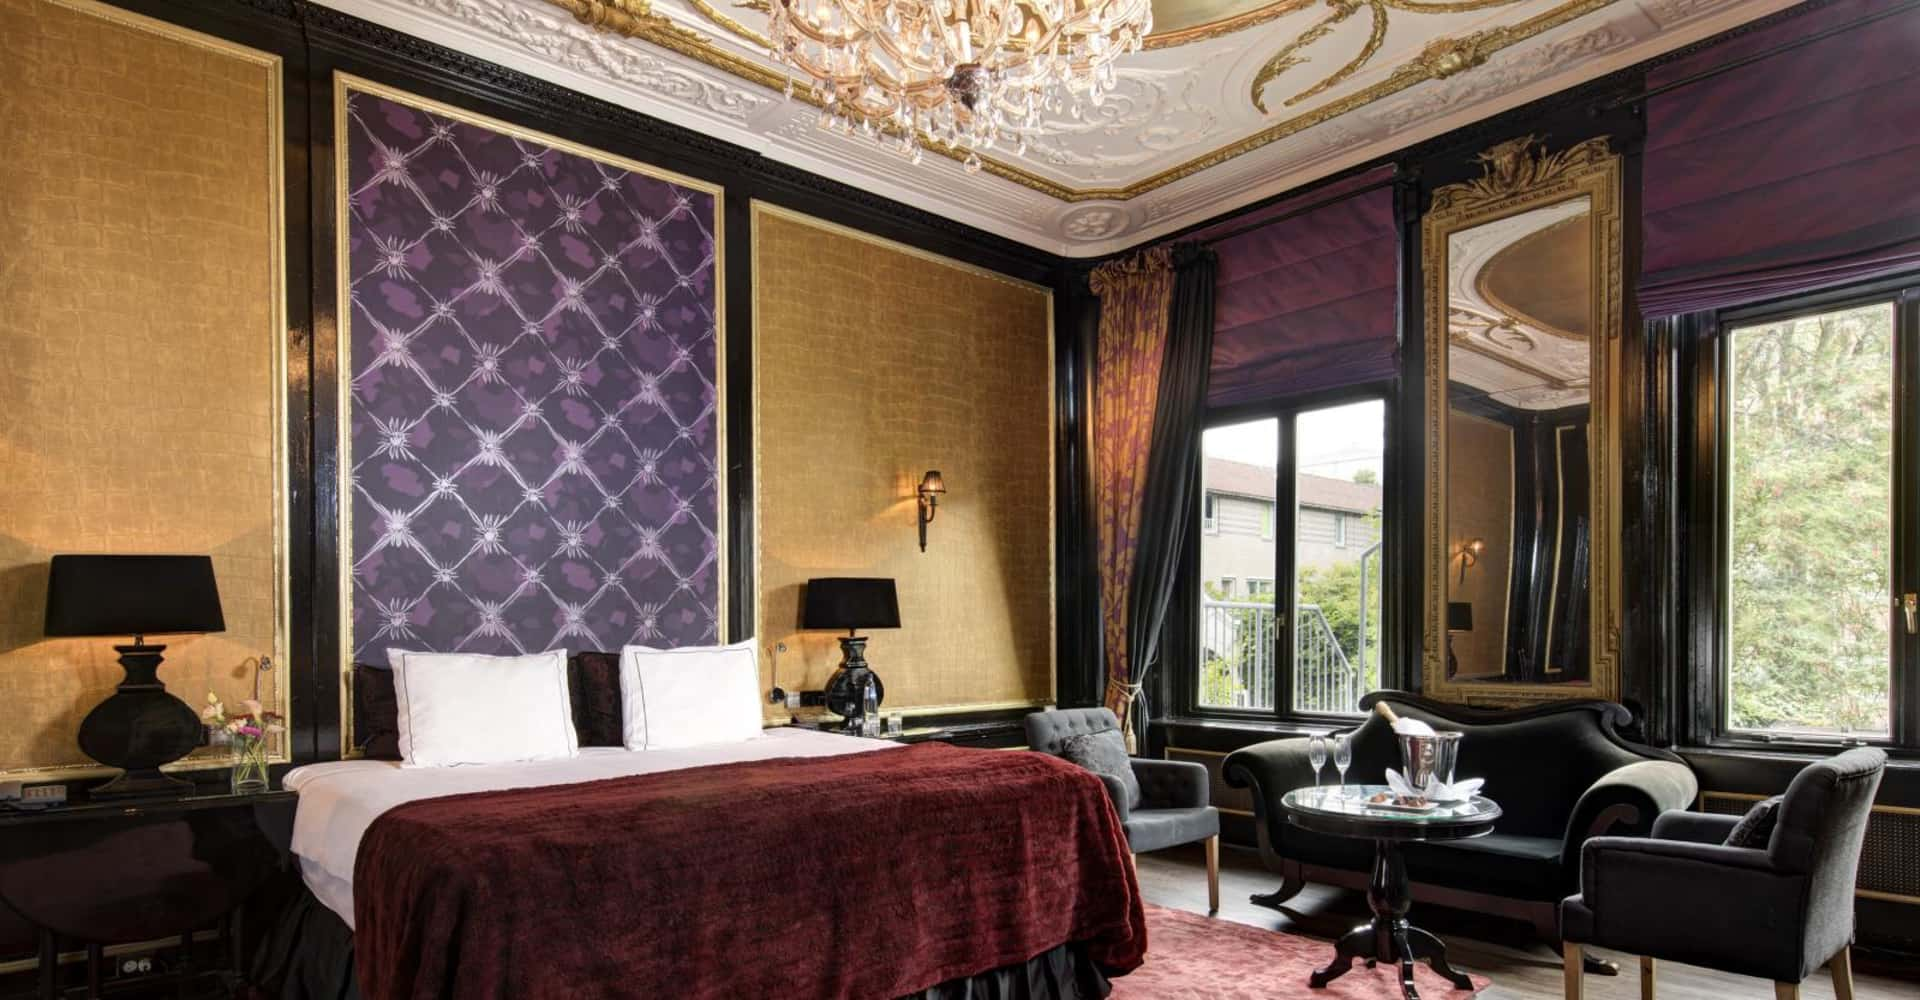 Royal Suite - The Toren Amsterdam - By the Pavilions